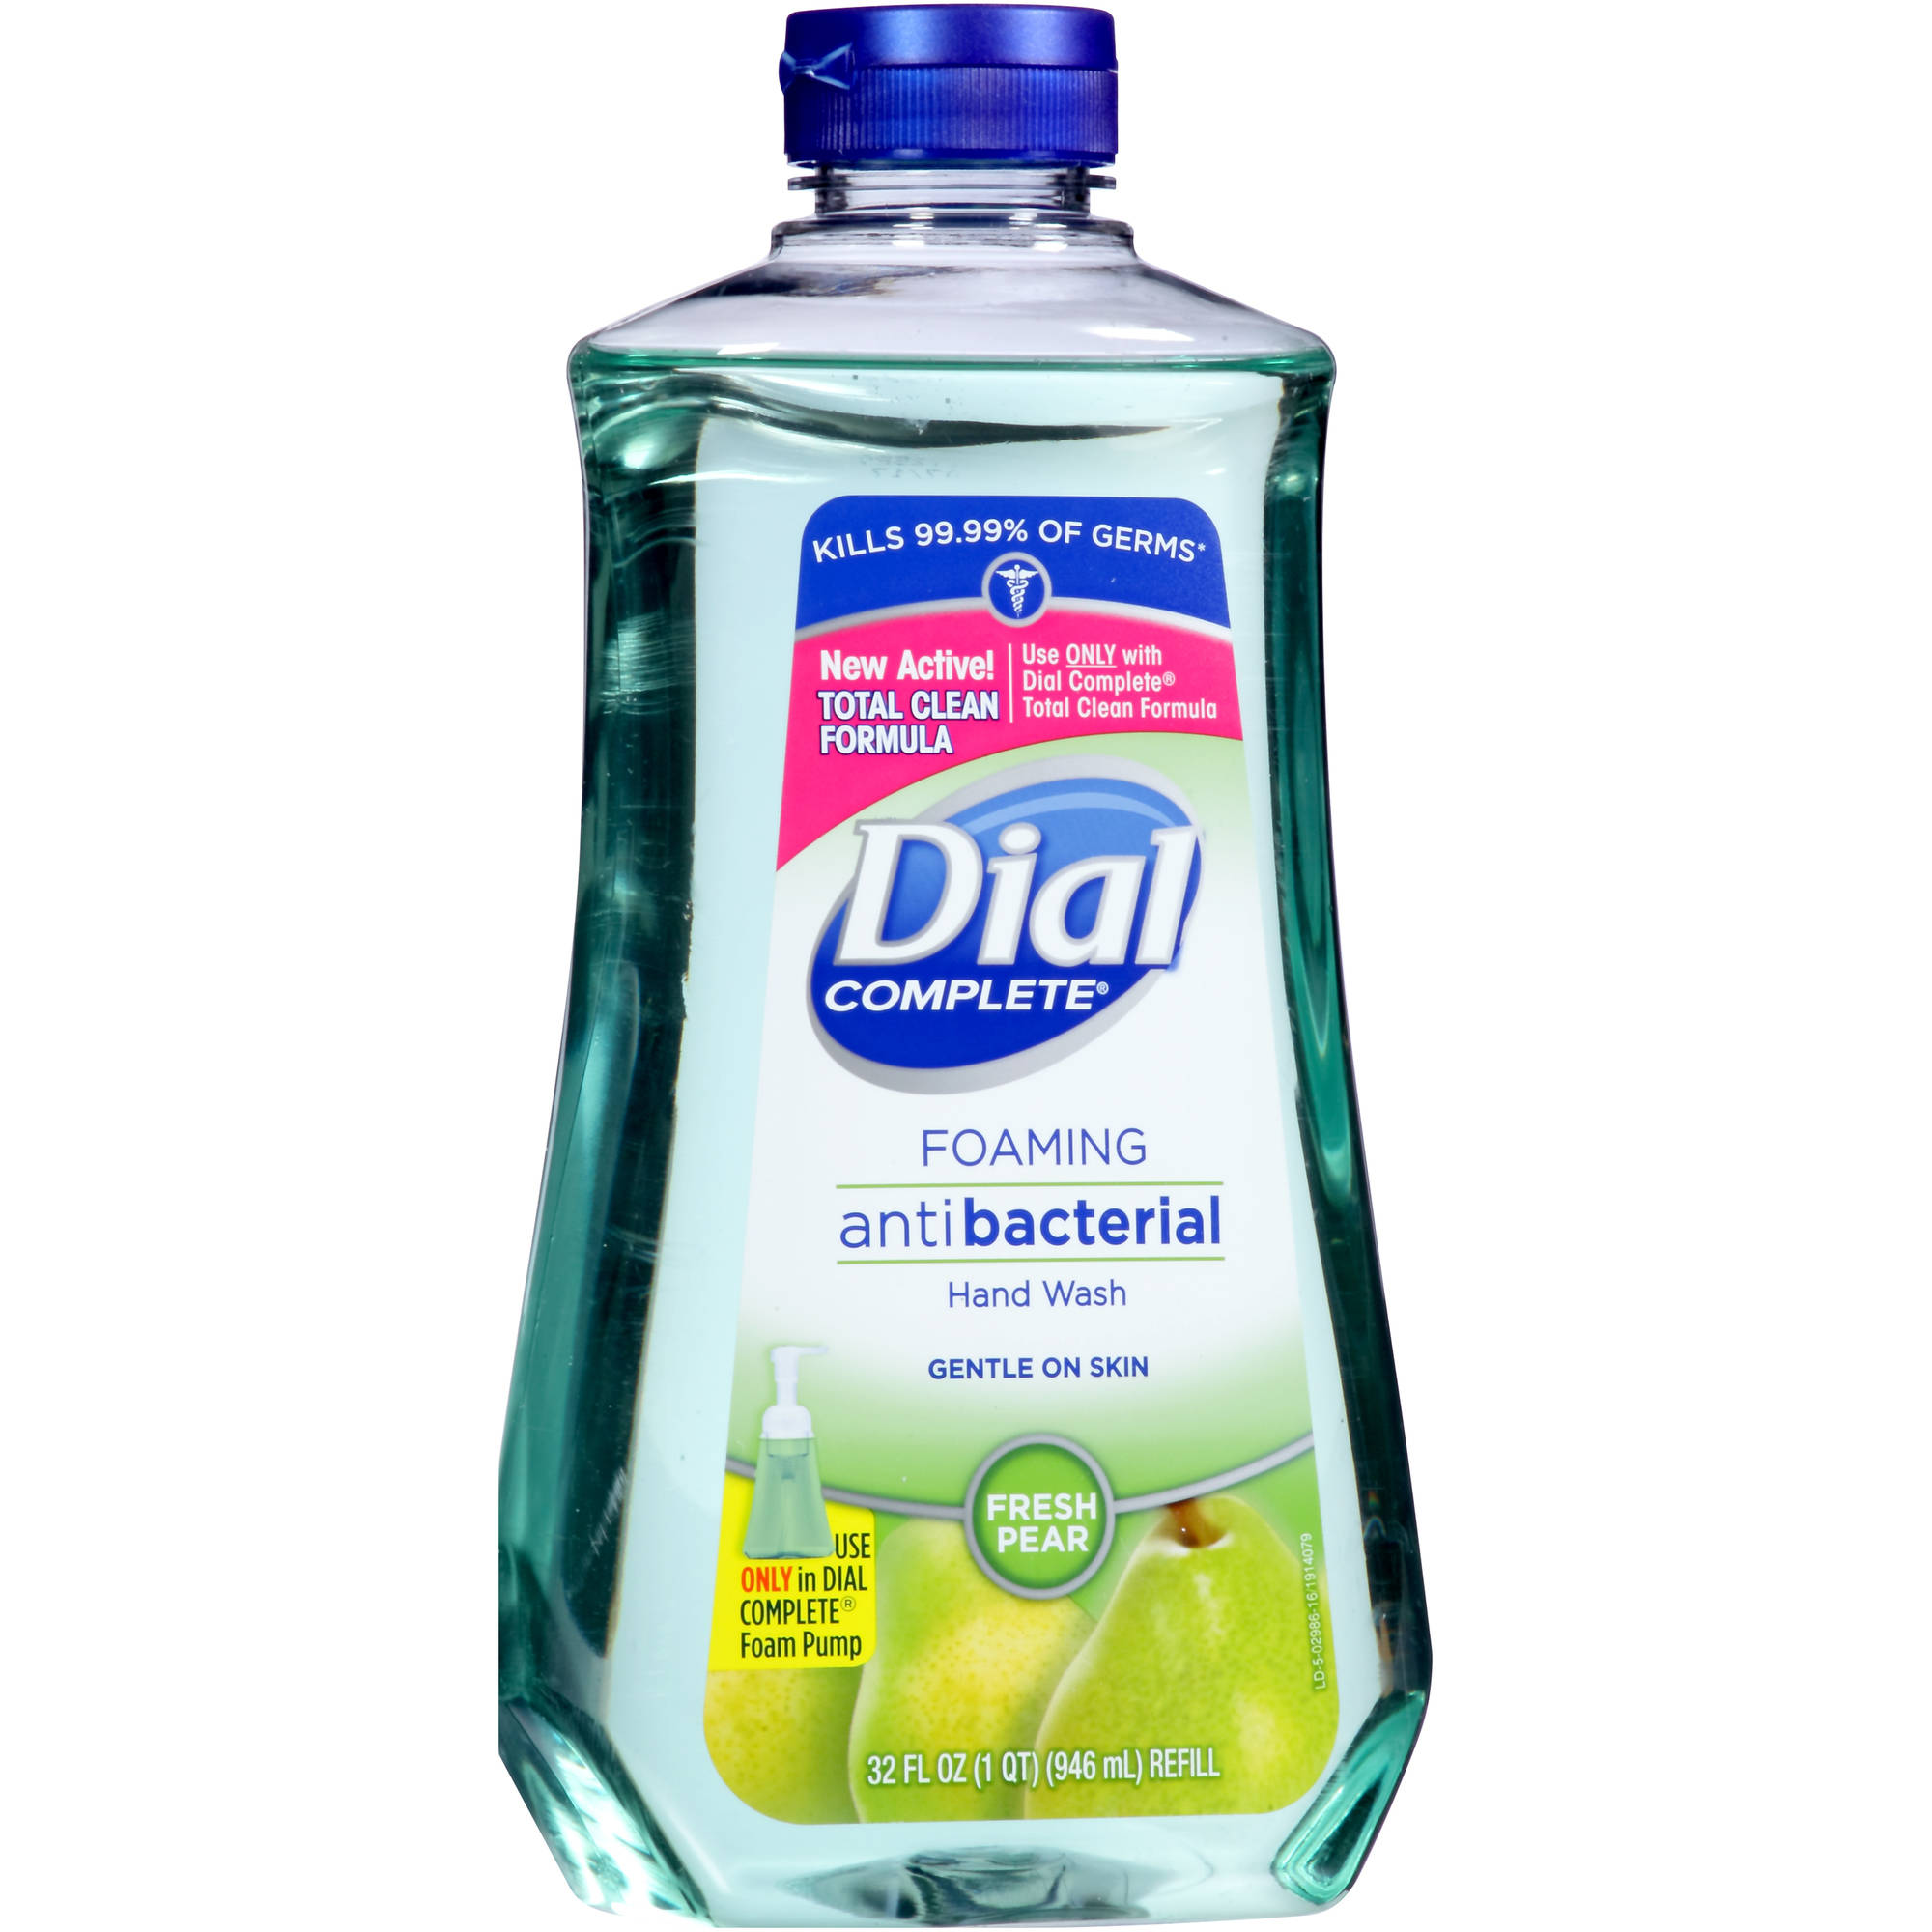 Dial Complete Fresh Pear Antibacterial With Lotion Foaming Hand Wash Refill, 32 fl oz